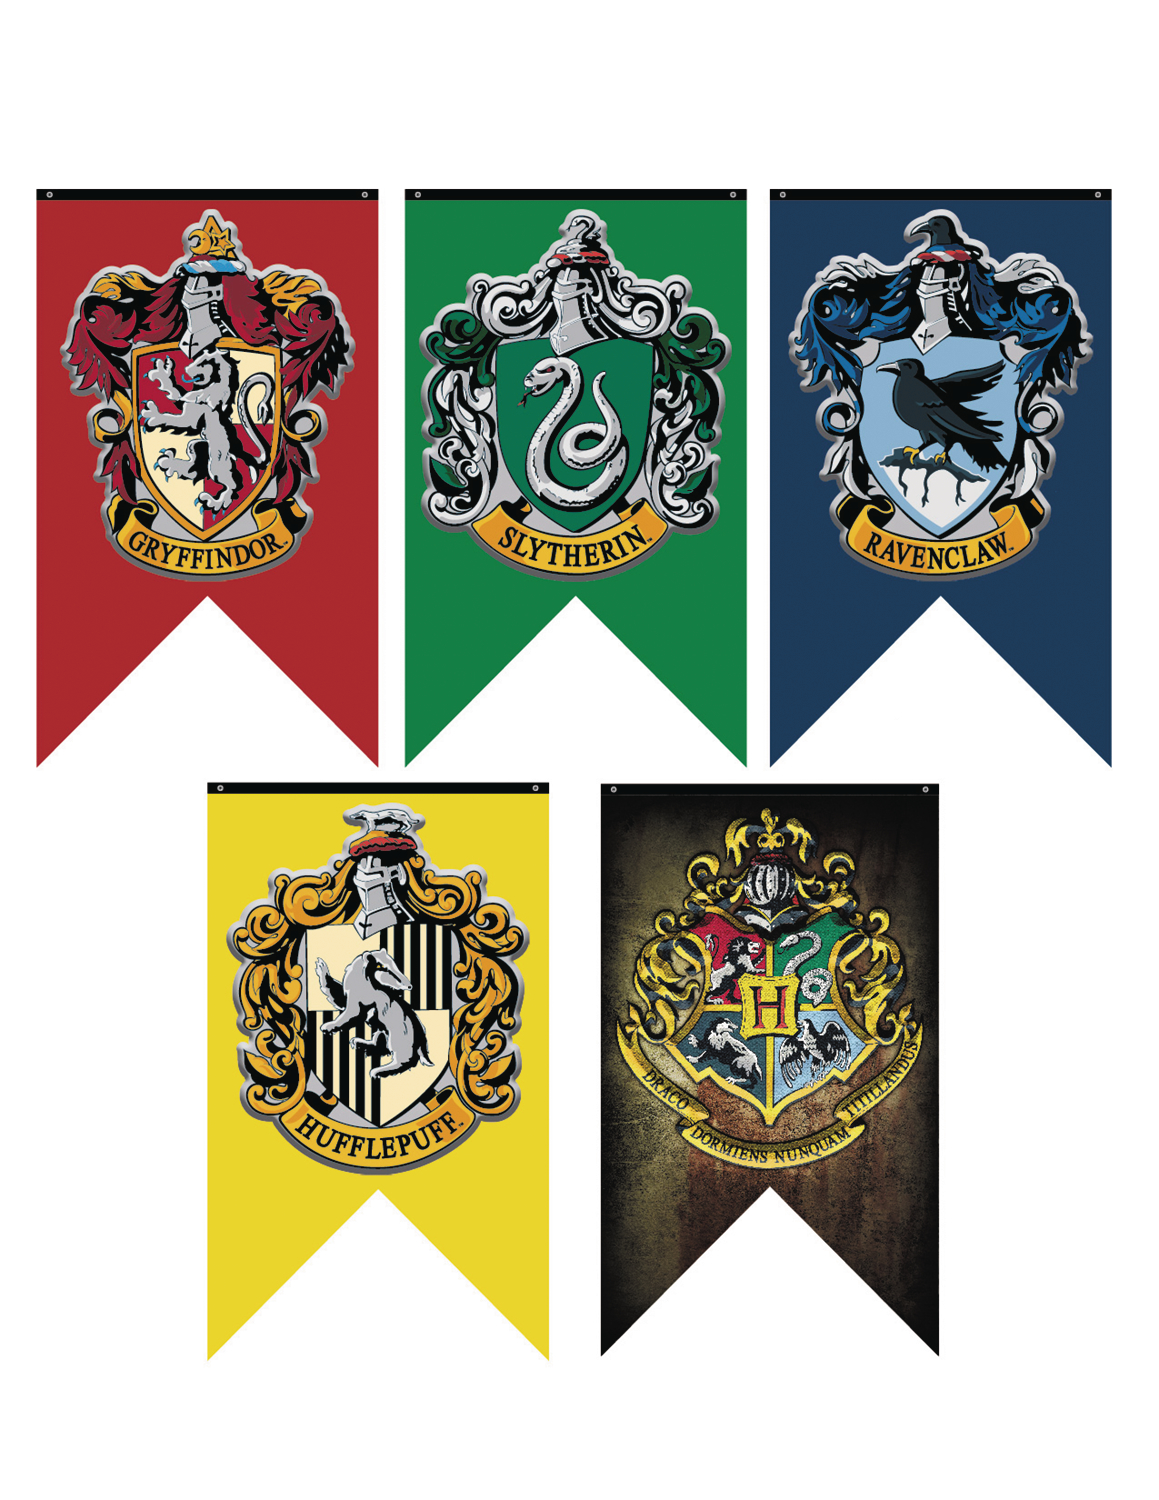 photograph about Hogwarts Banner Printable known as Extraordinary Hogwarts Dwelling Banners Printable Bonn Dialogues